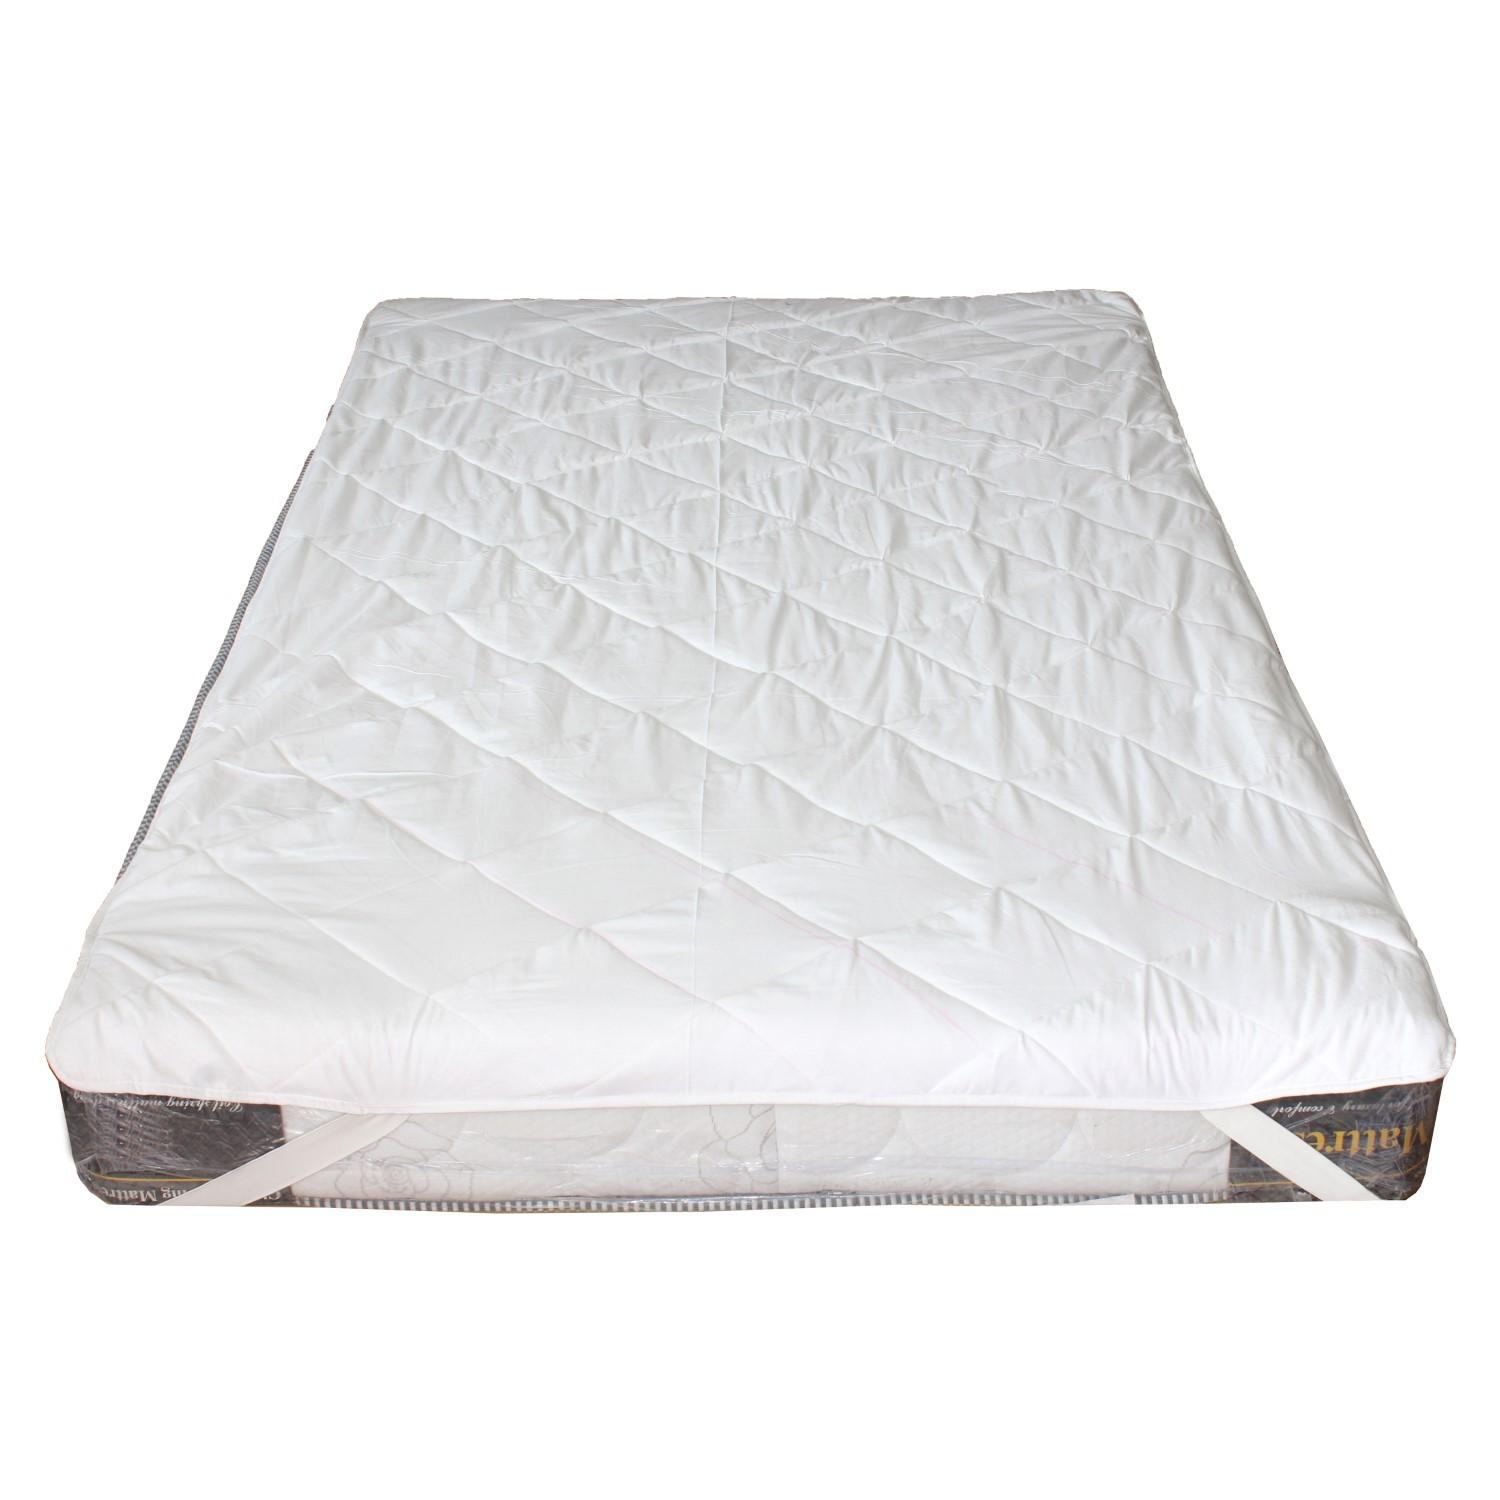 info for 6a3d2 7ef4e White Waterproof Mattress Protector - Double Bed